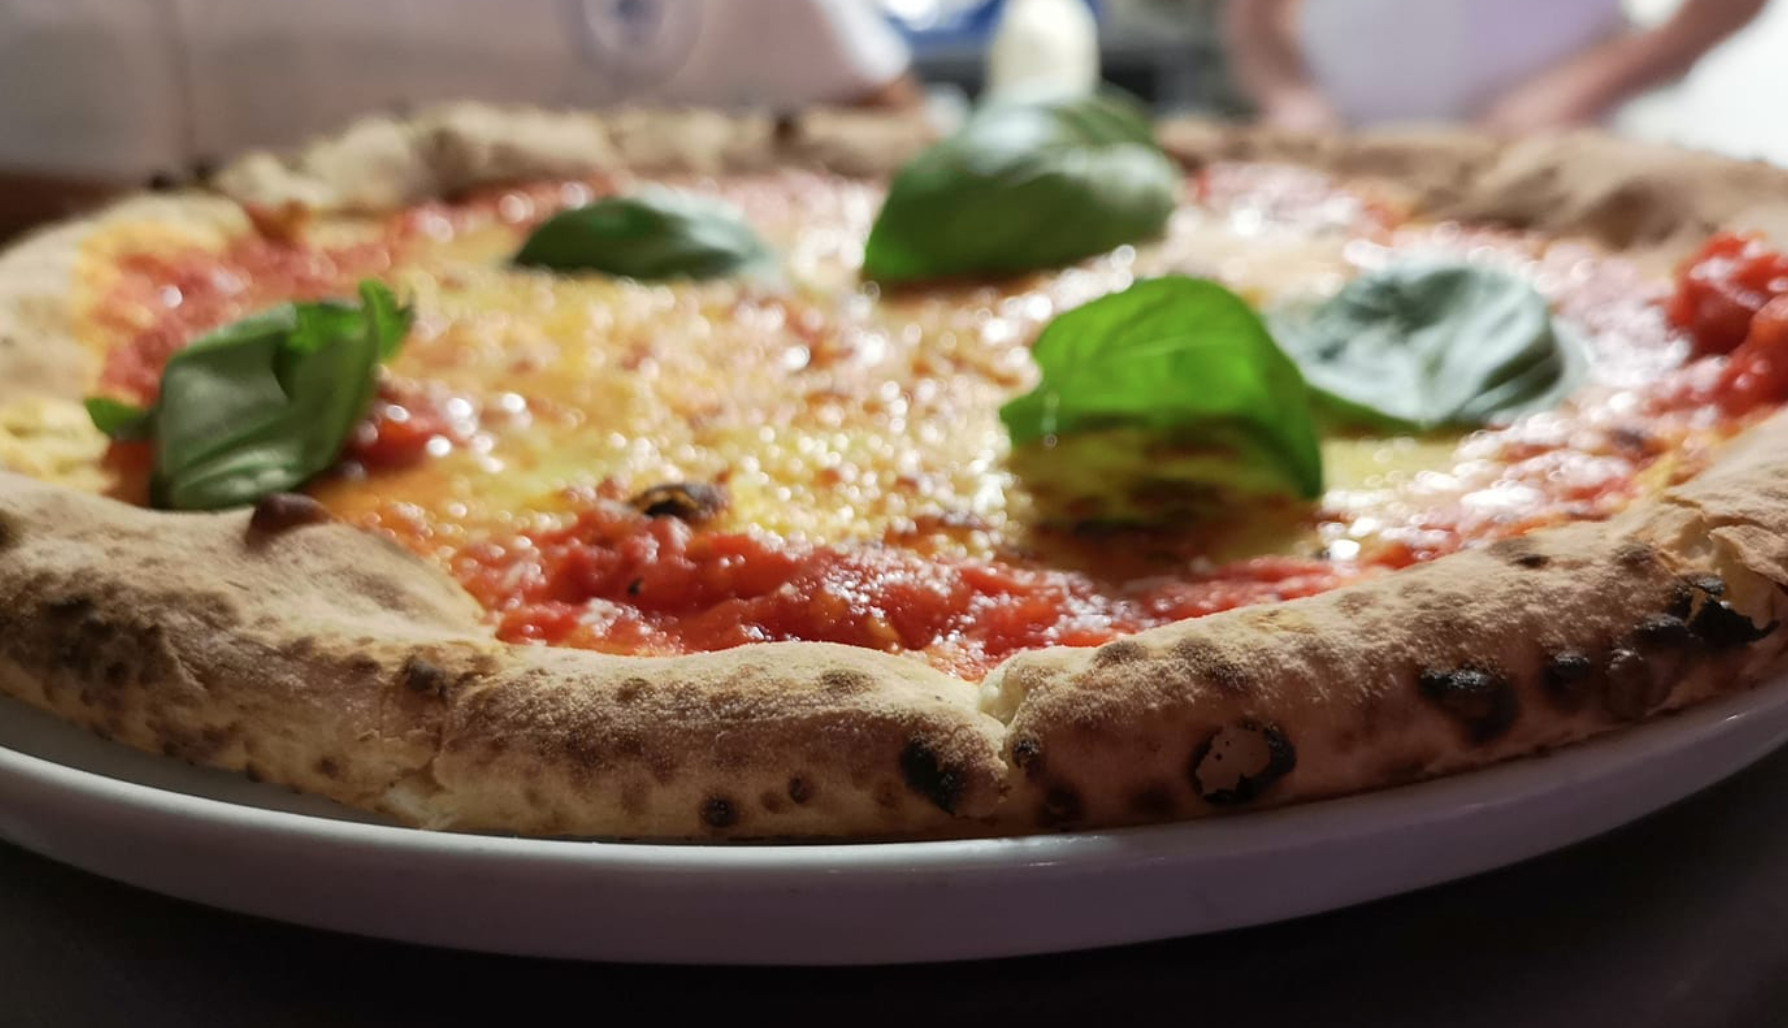 Pizzeria Napoli in New Zealand